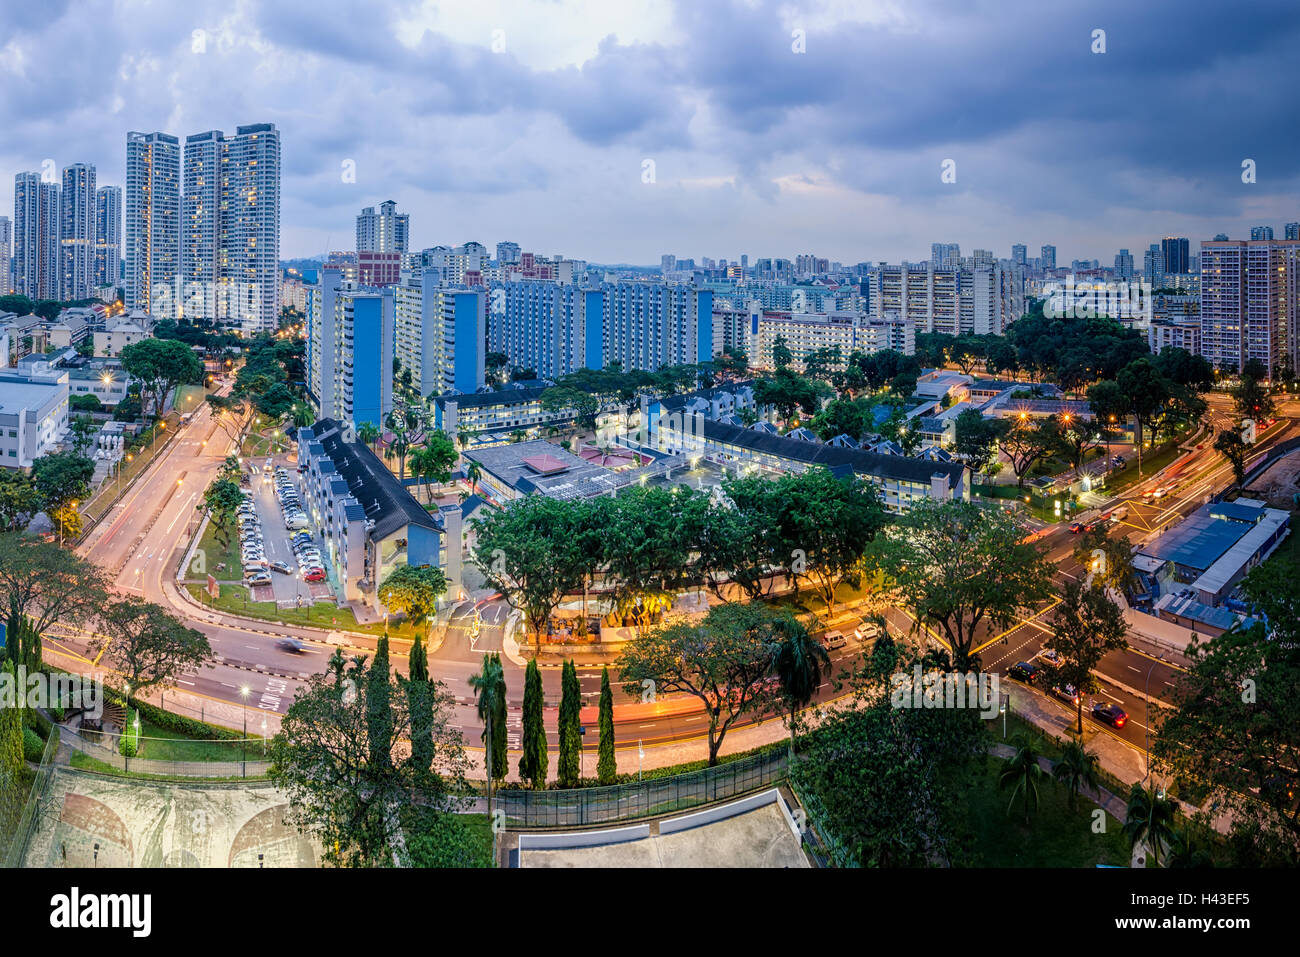 City skyline at dusk, Toa Payoh, Singapore - Stock Image